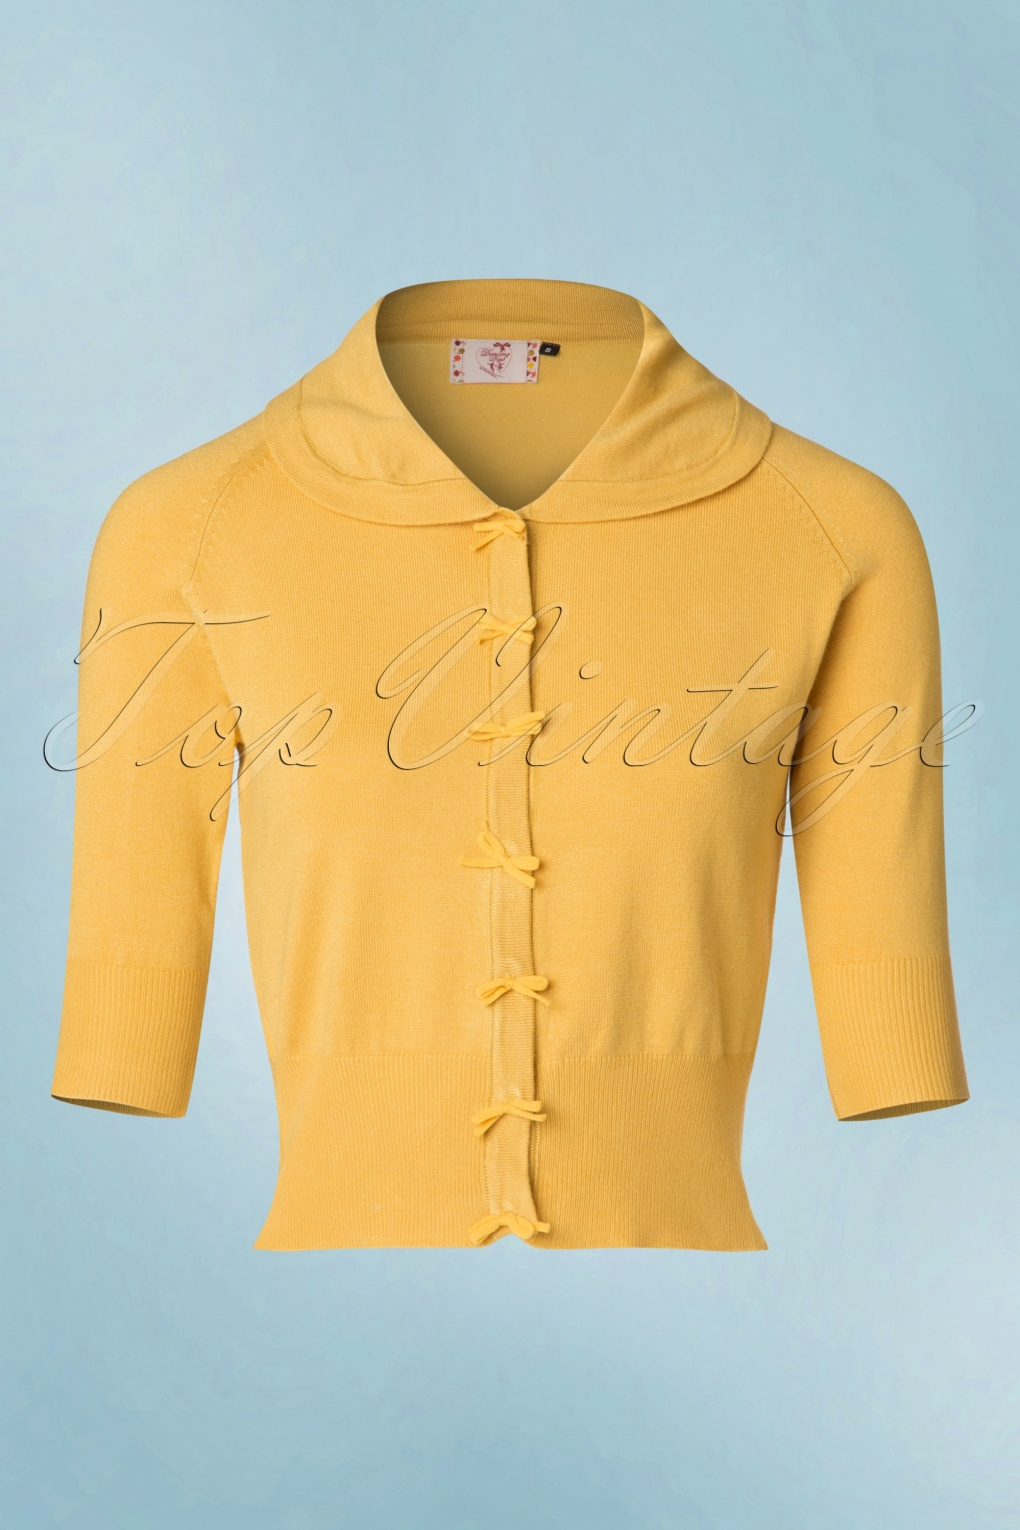 1940s Blouses, Shirts and Tops Fashion History 40s April Bow Cardigan in Mustard Yellow £34.70 AT vintagedancer.com